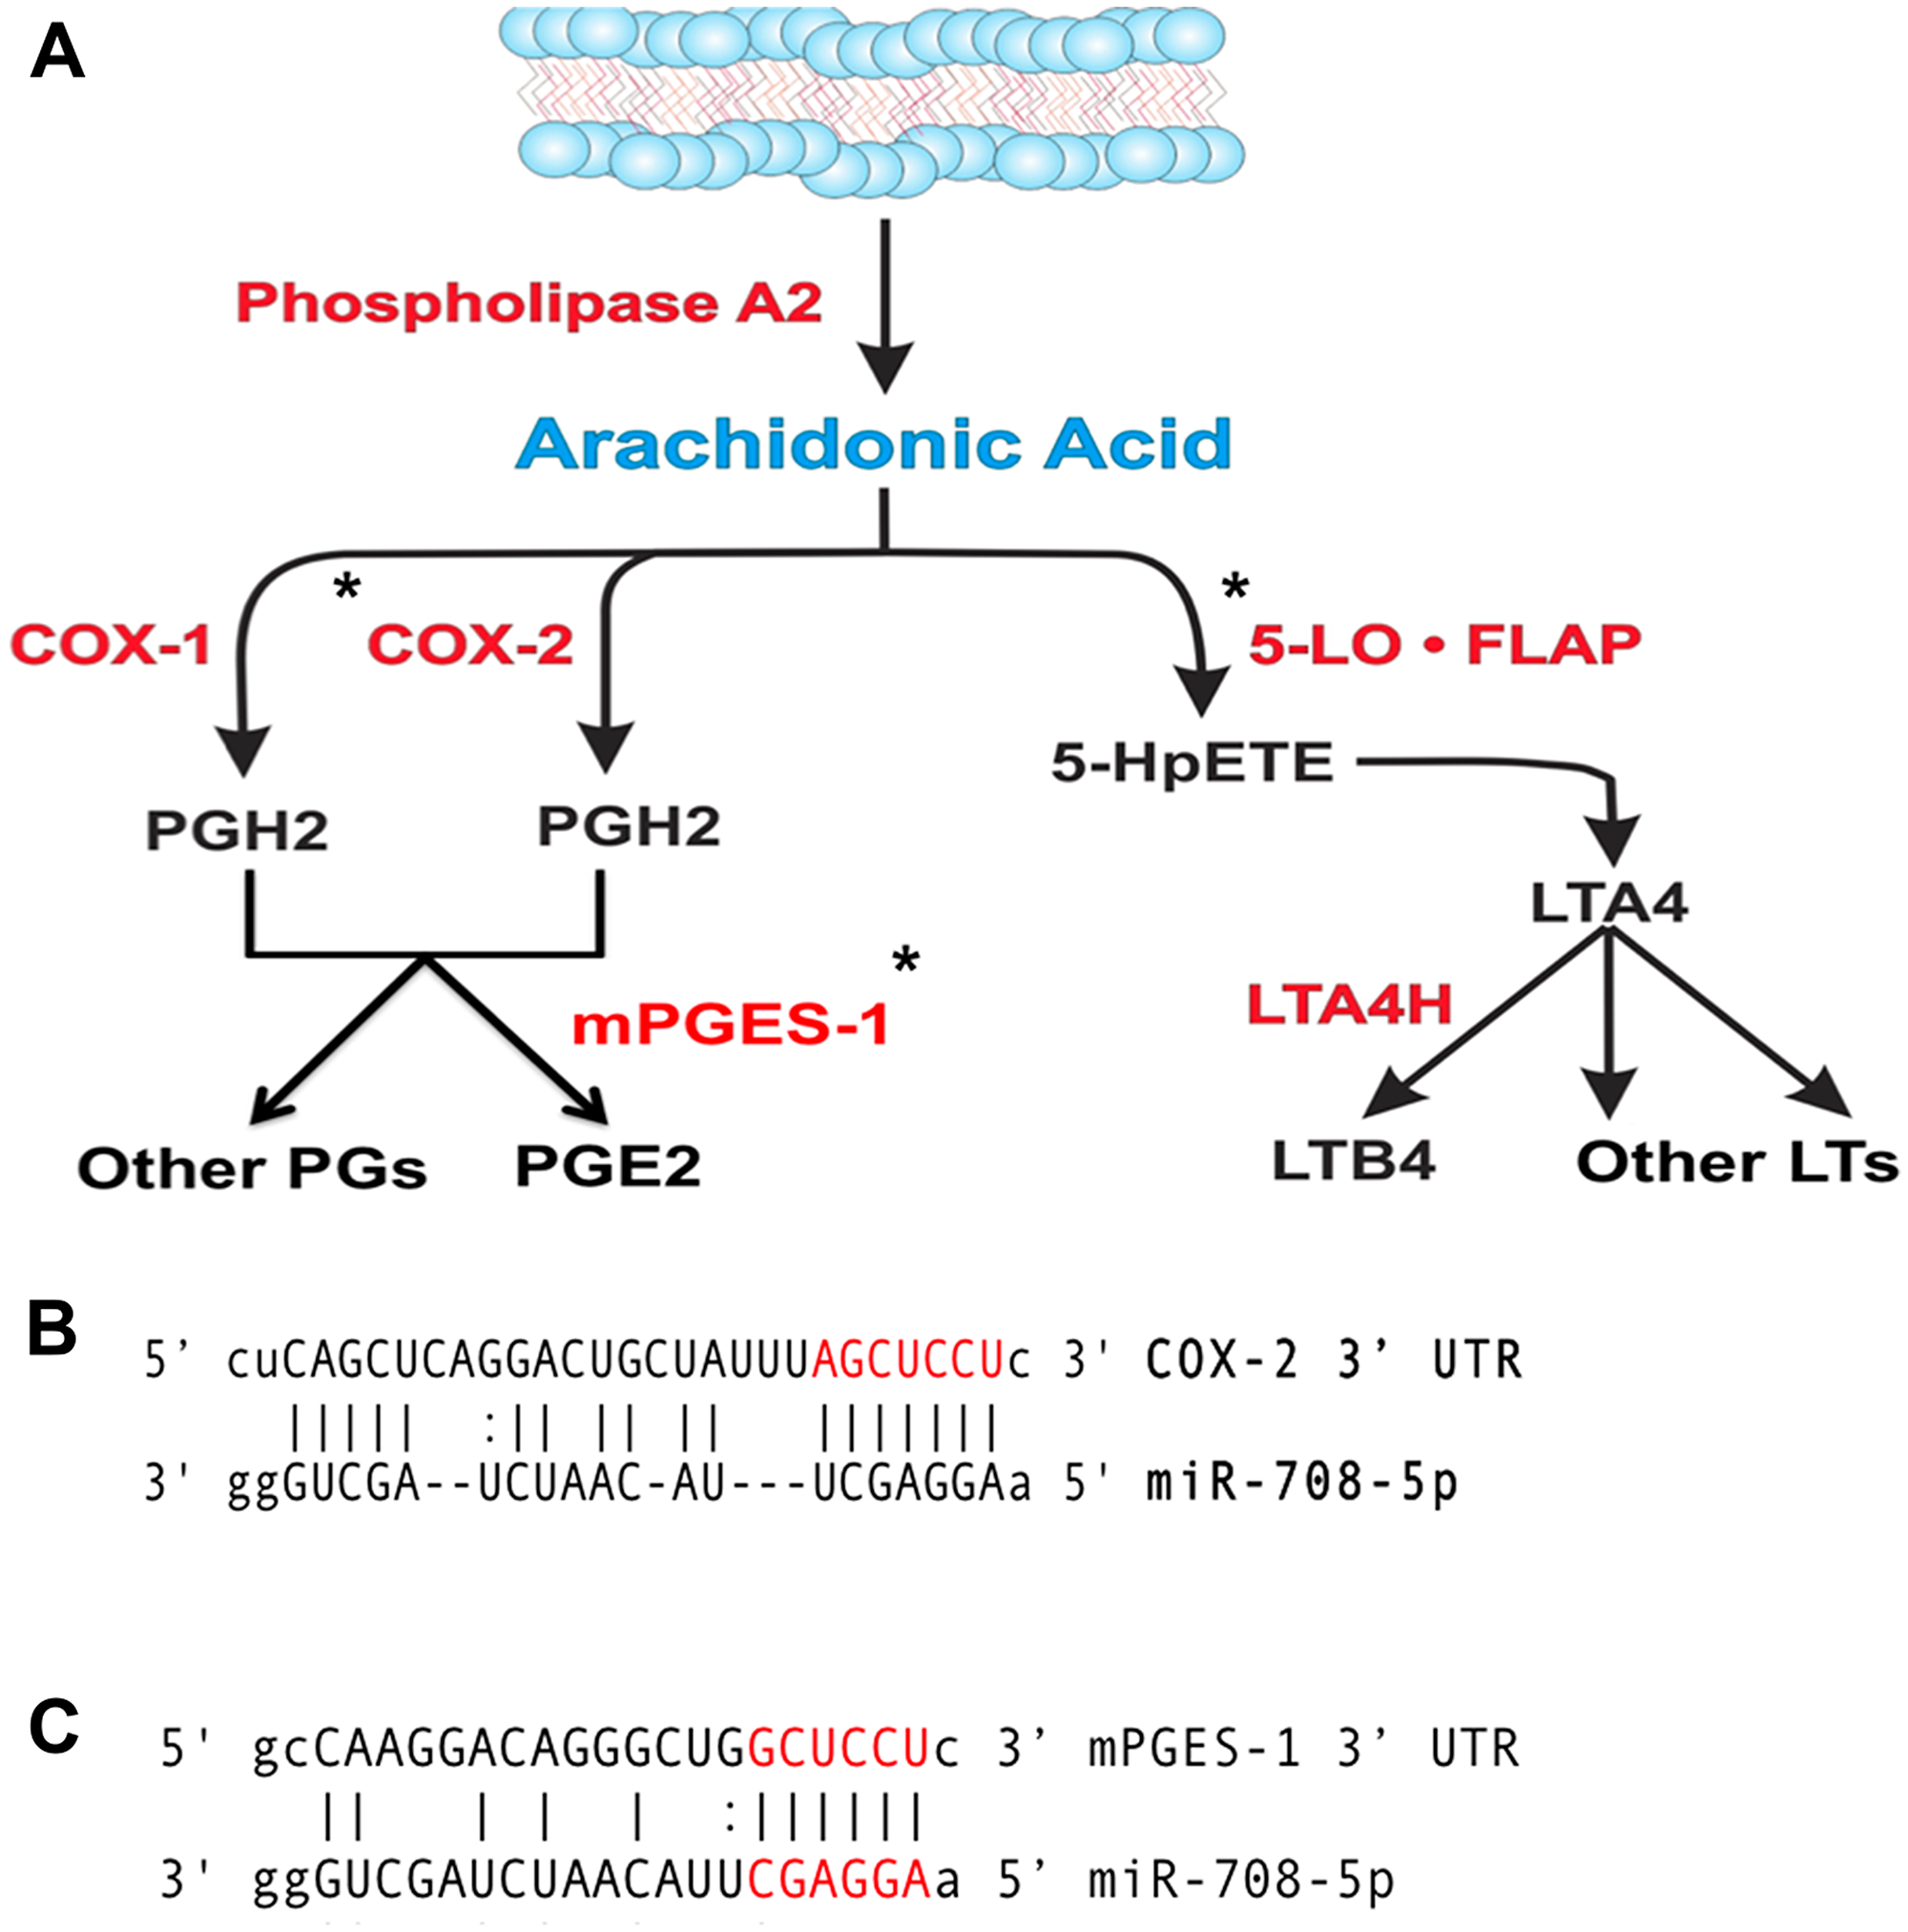 miR-708 is predicted to target the AA pathway.